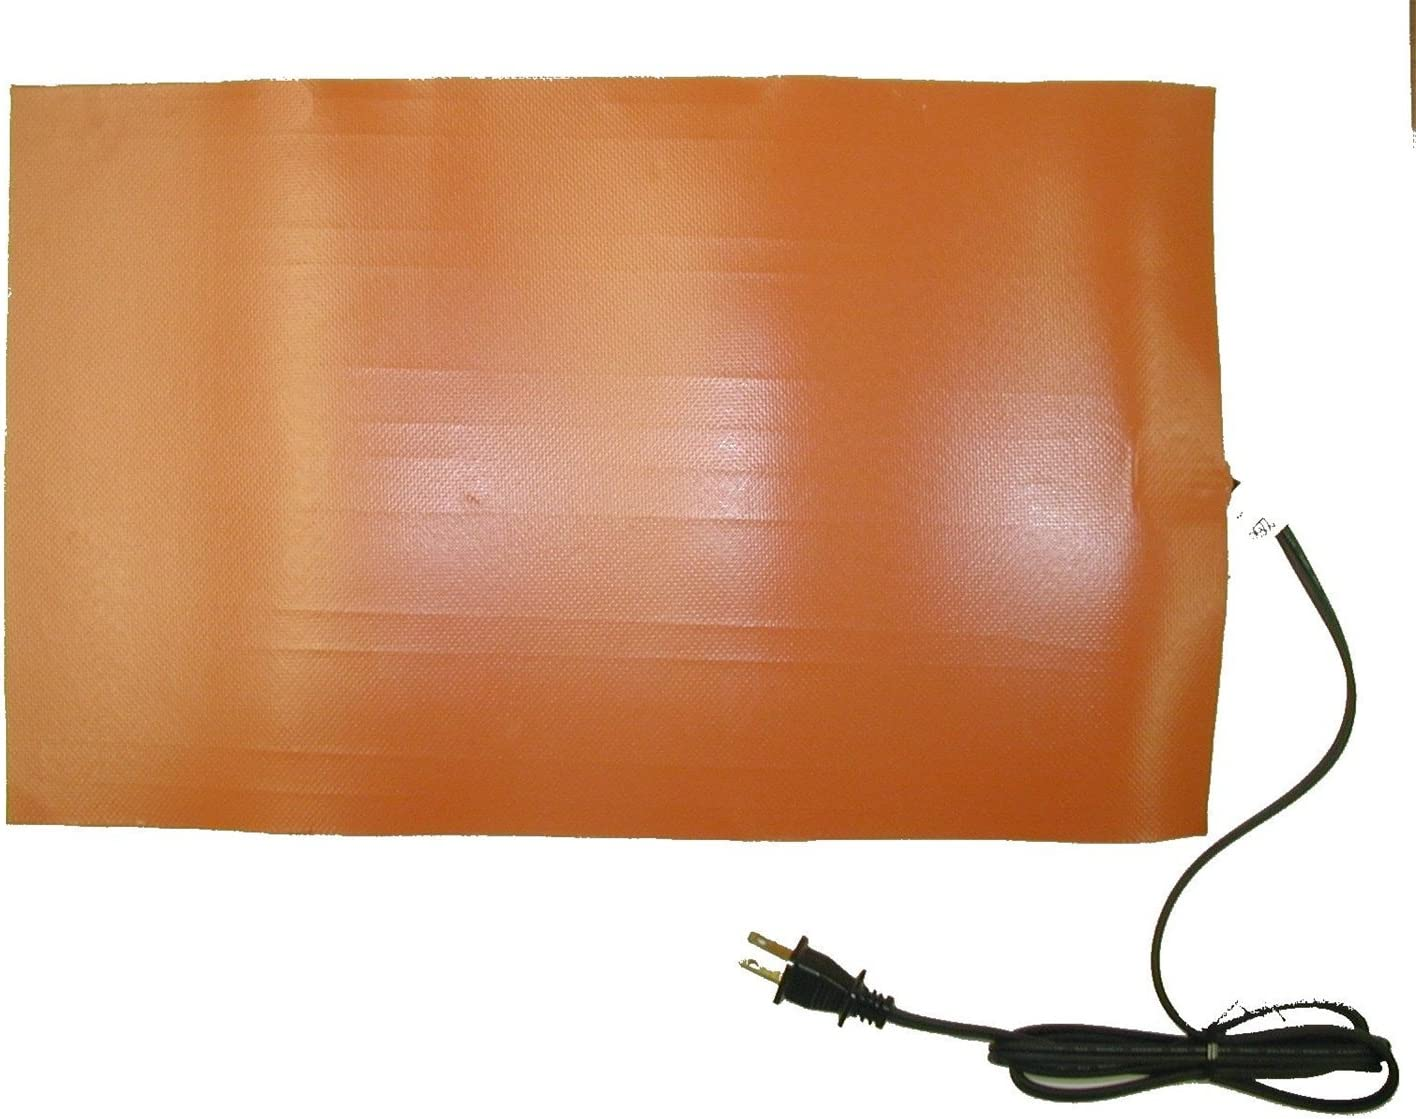 "Kat's 22600 80 Watt 11""x 18"" Battery Pad Heater"